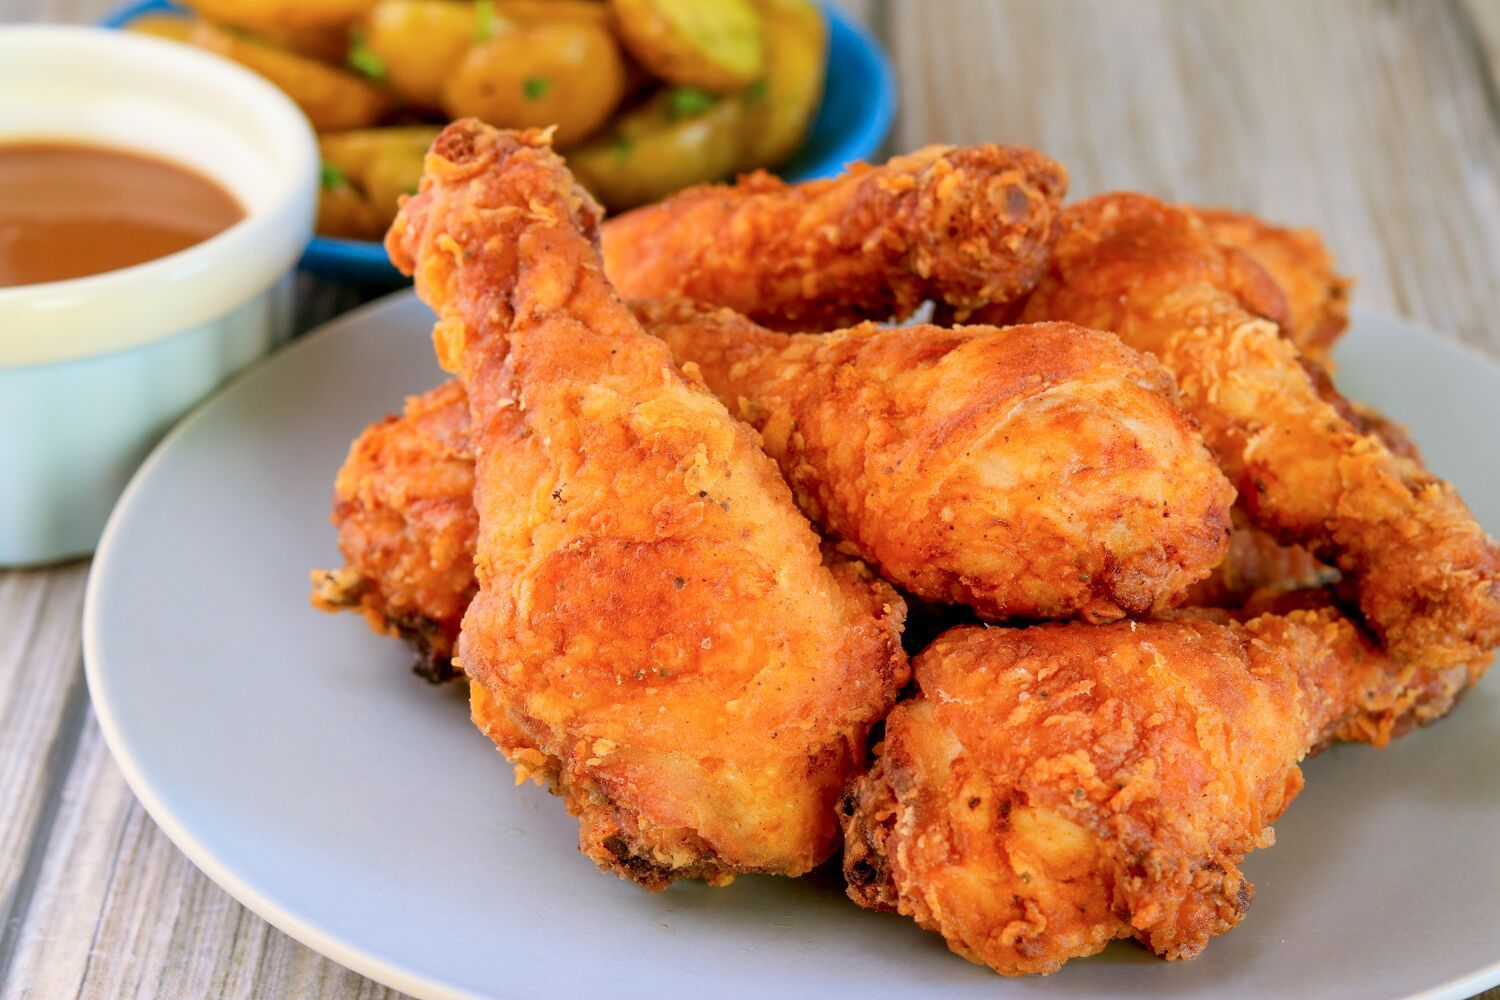 Get The Party Started With These Spicy Fried Chicken Drumsticks Recipe Drumstick Recipes Chicken Drumstick Recipes Spicy Fried Chicken